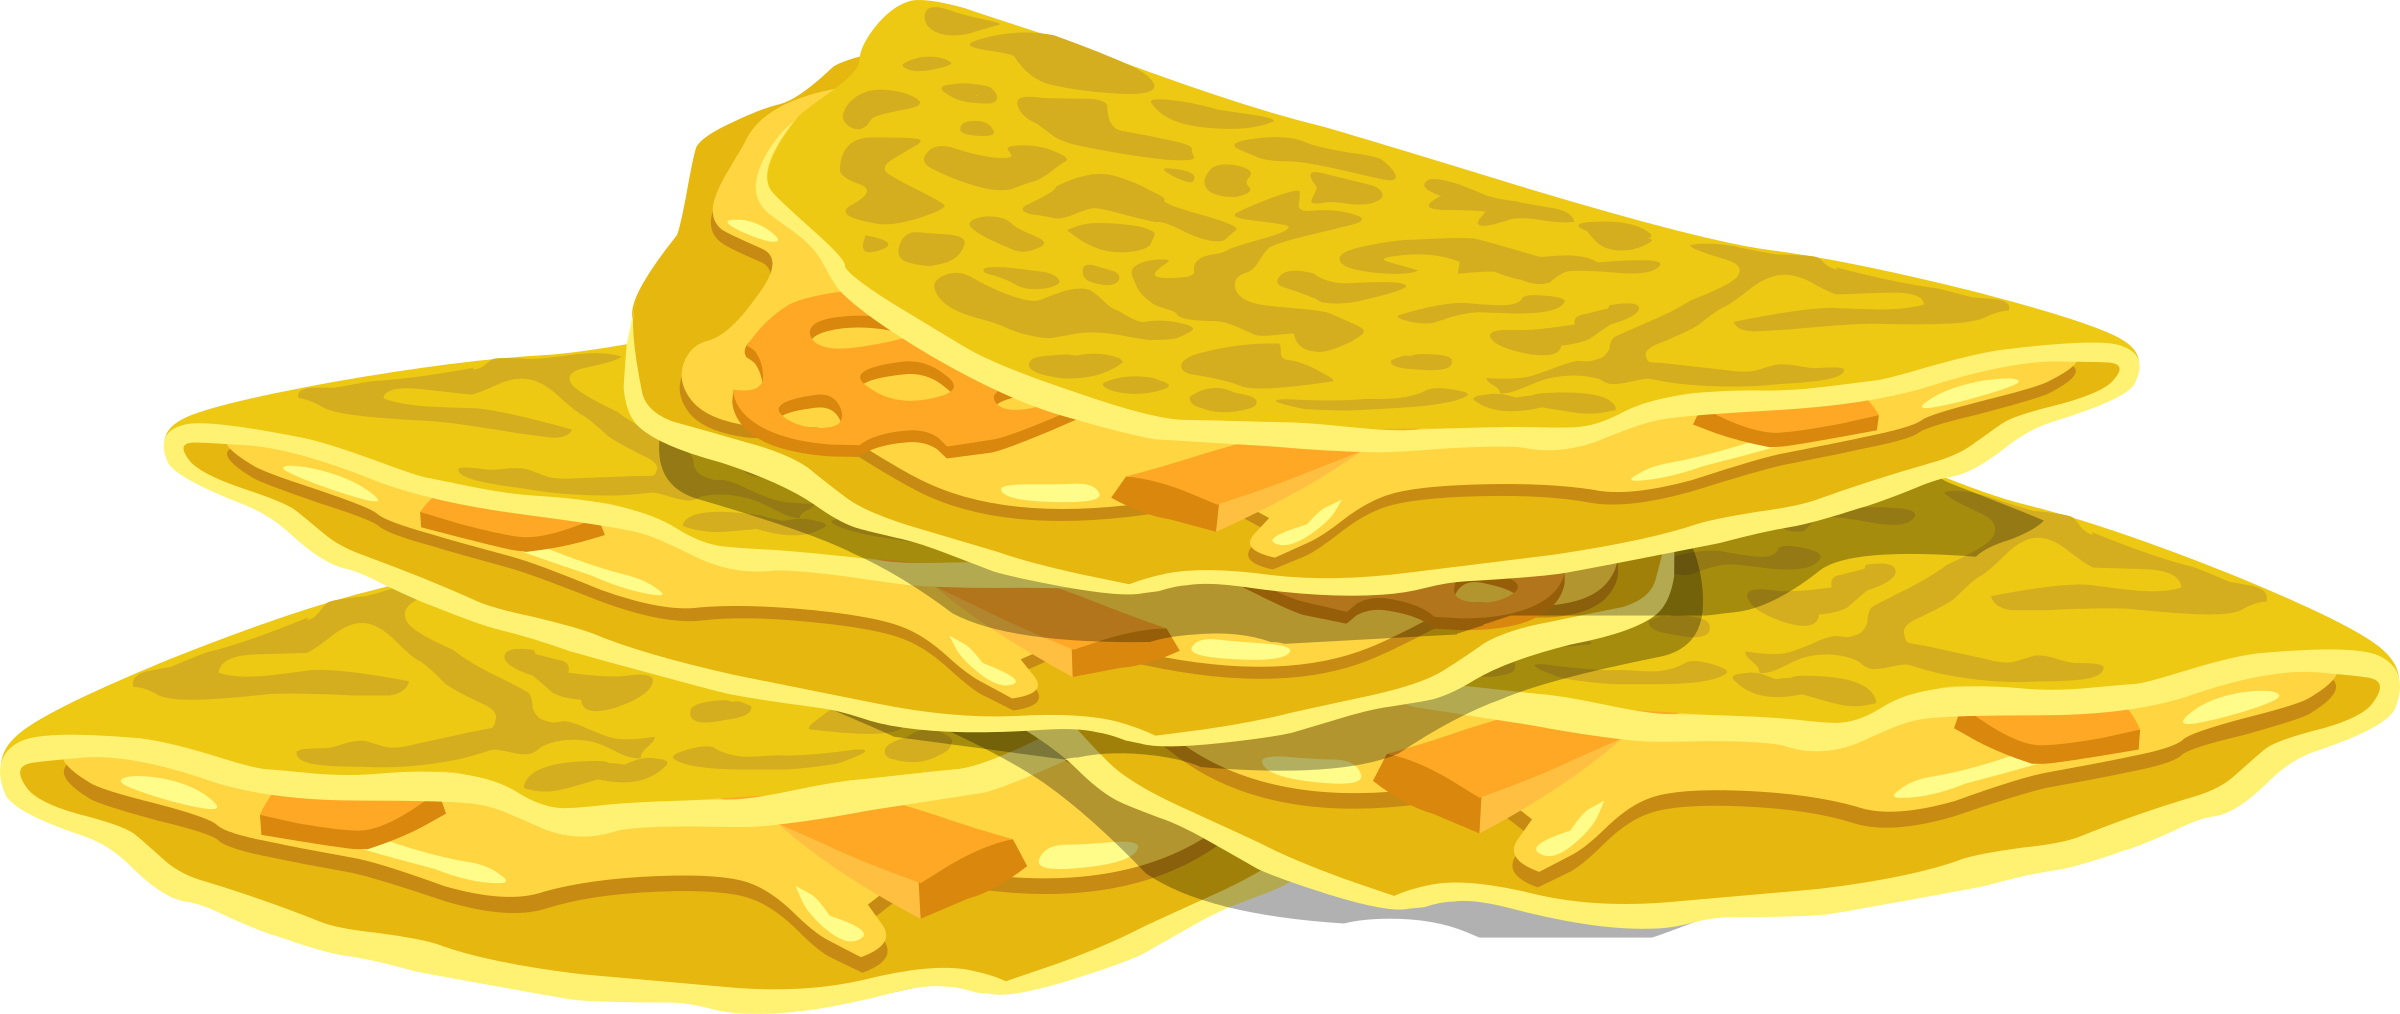 Omelet clipart - Clipground